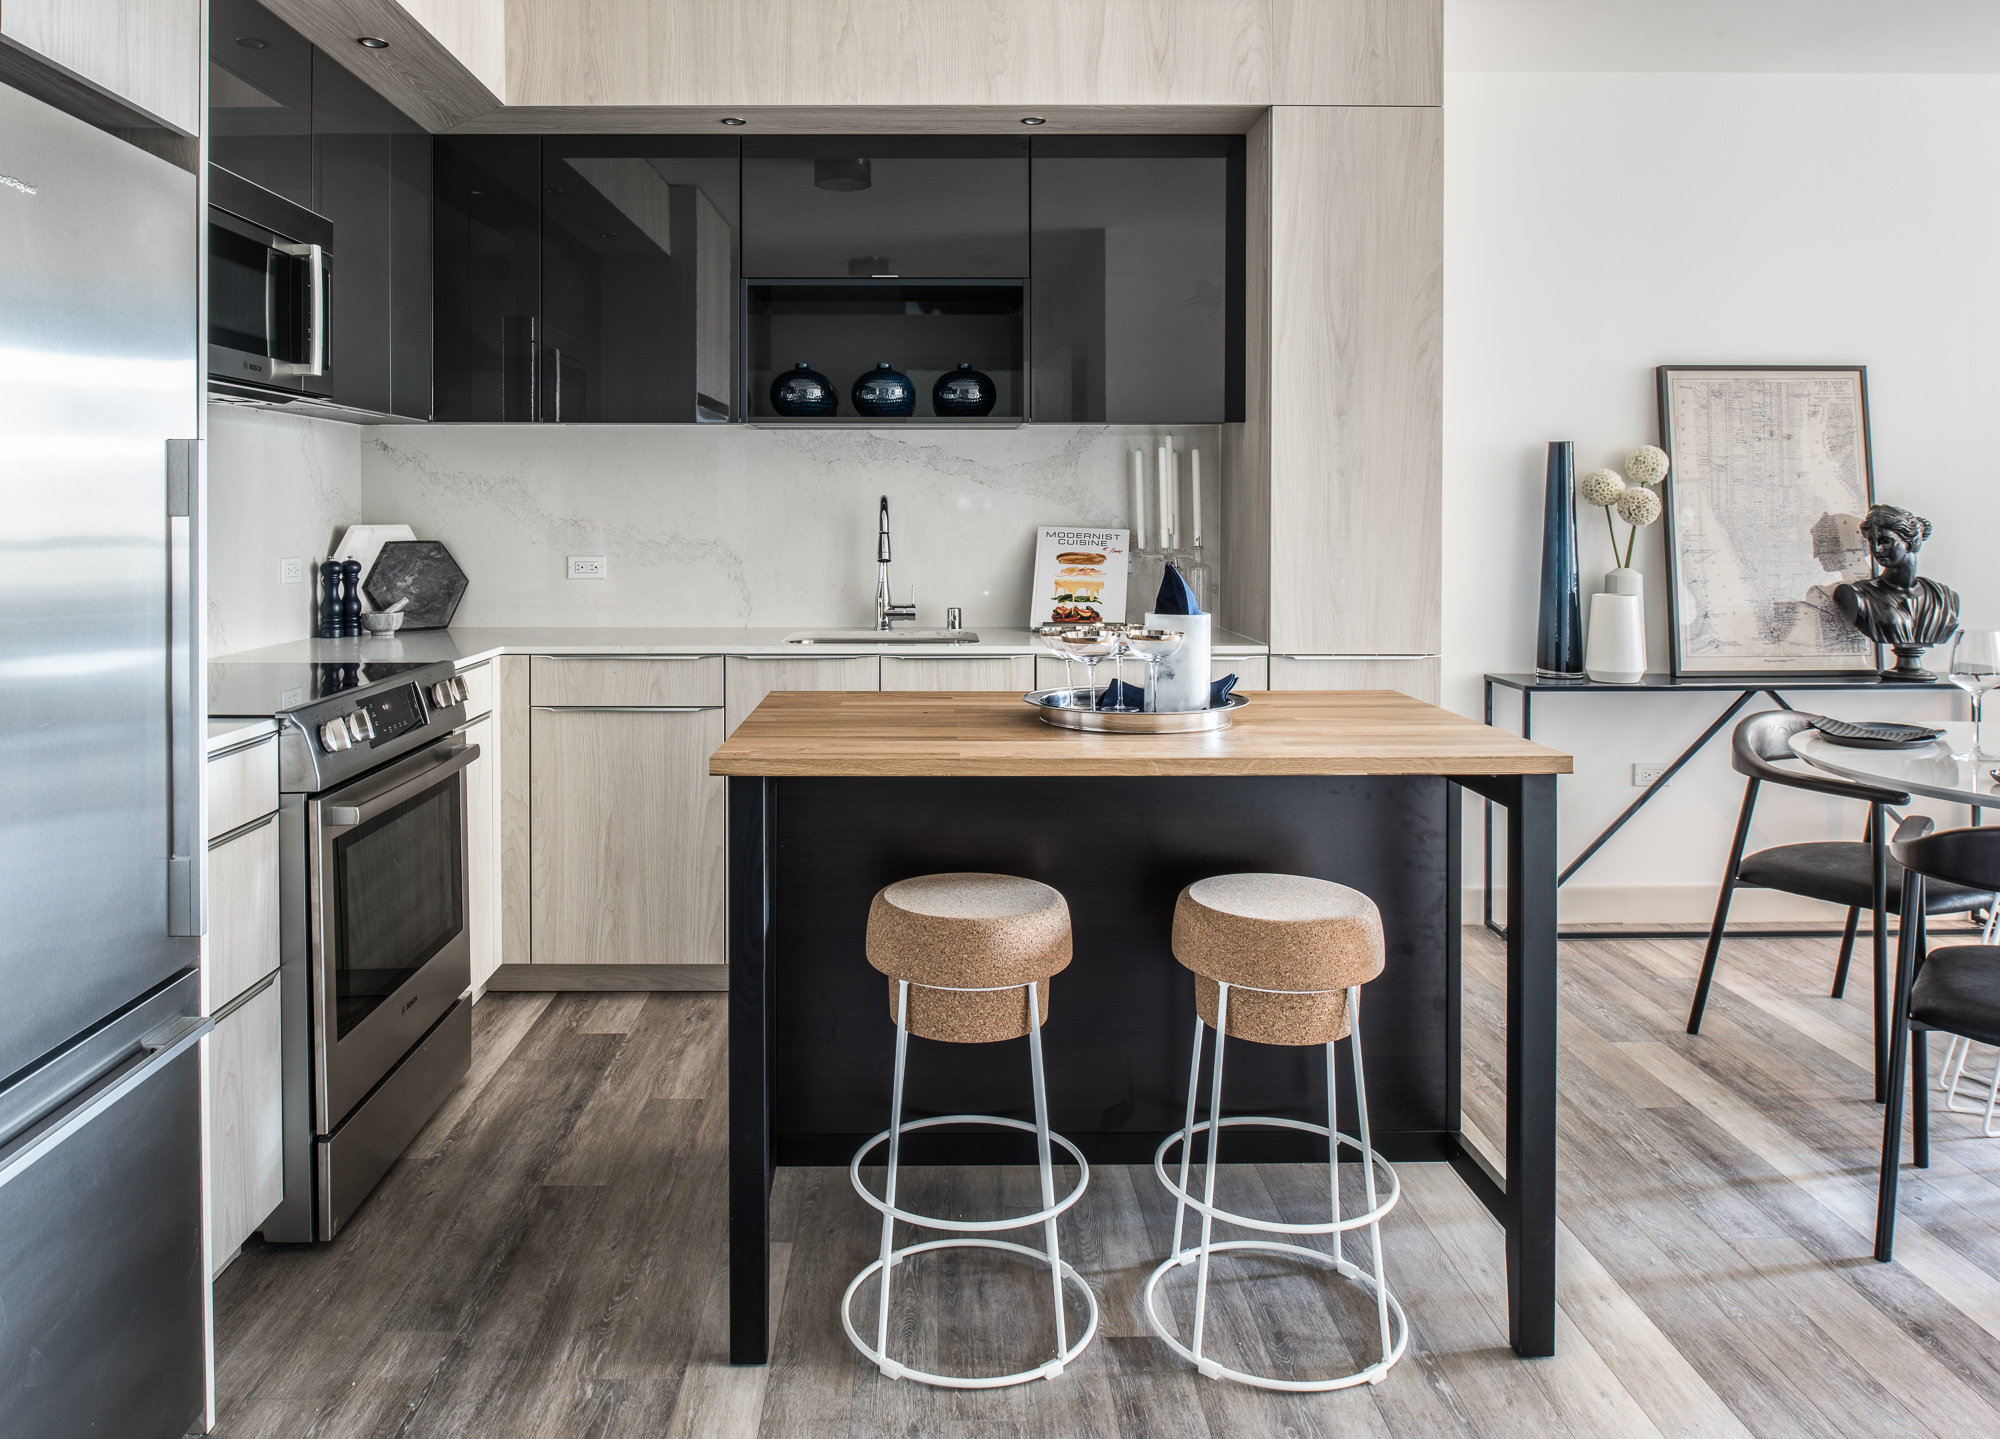 Trinity San Francisco kitchen with light wood cabinets and floors and black metal island with white metal stools